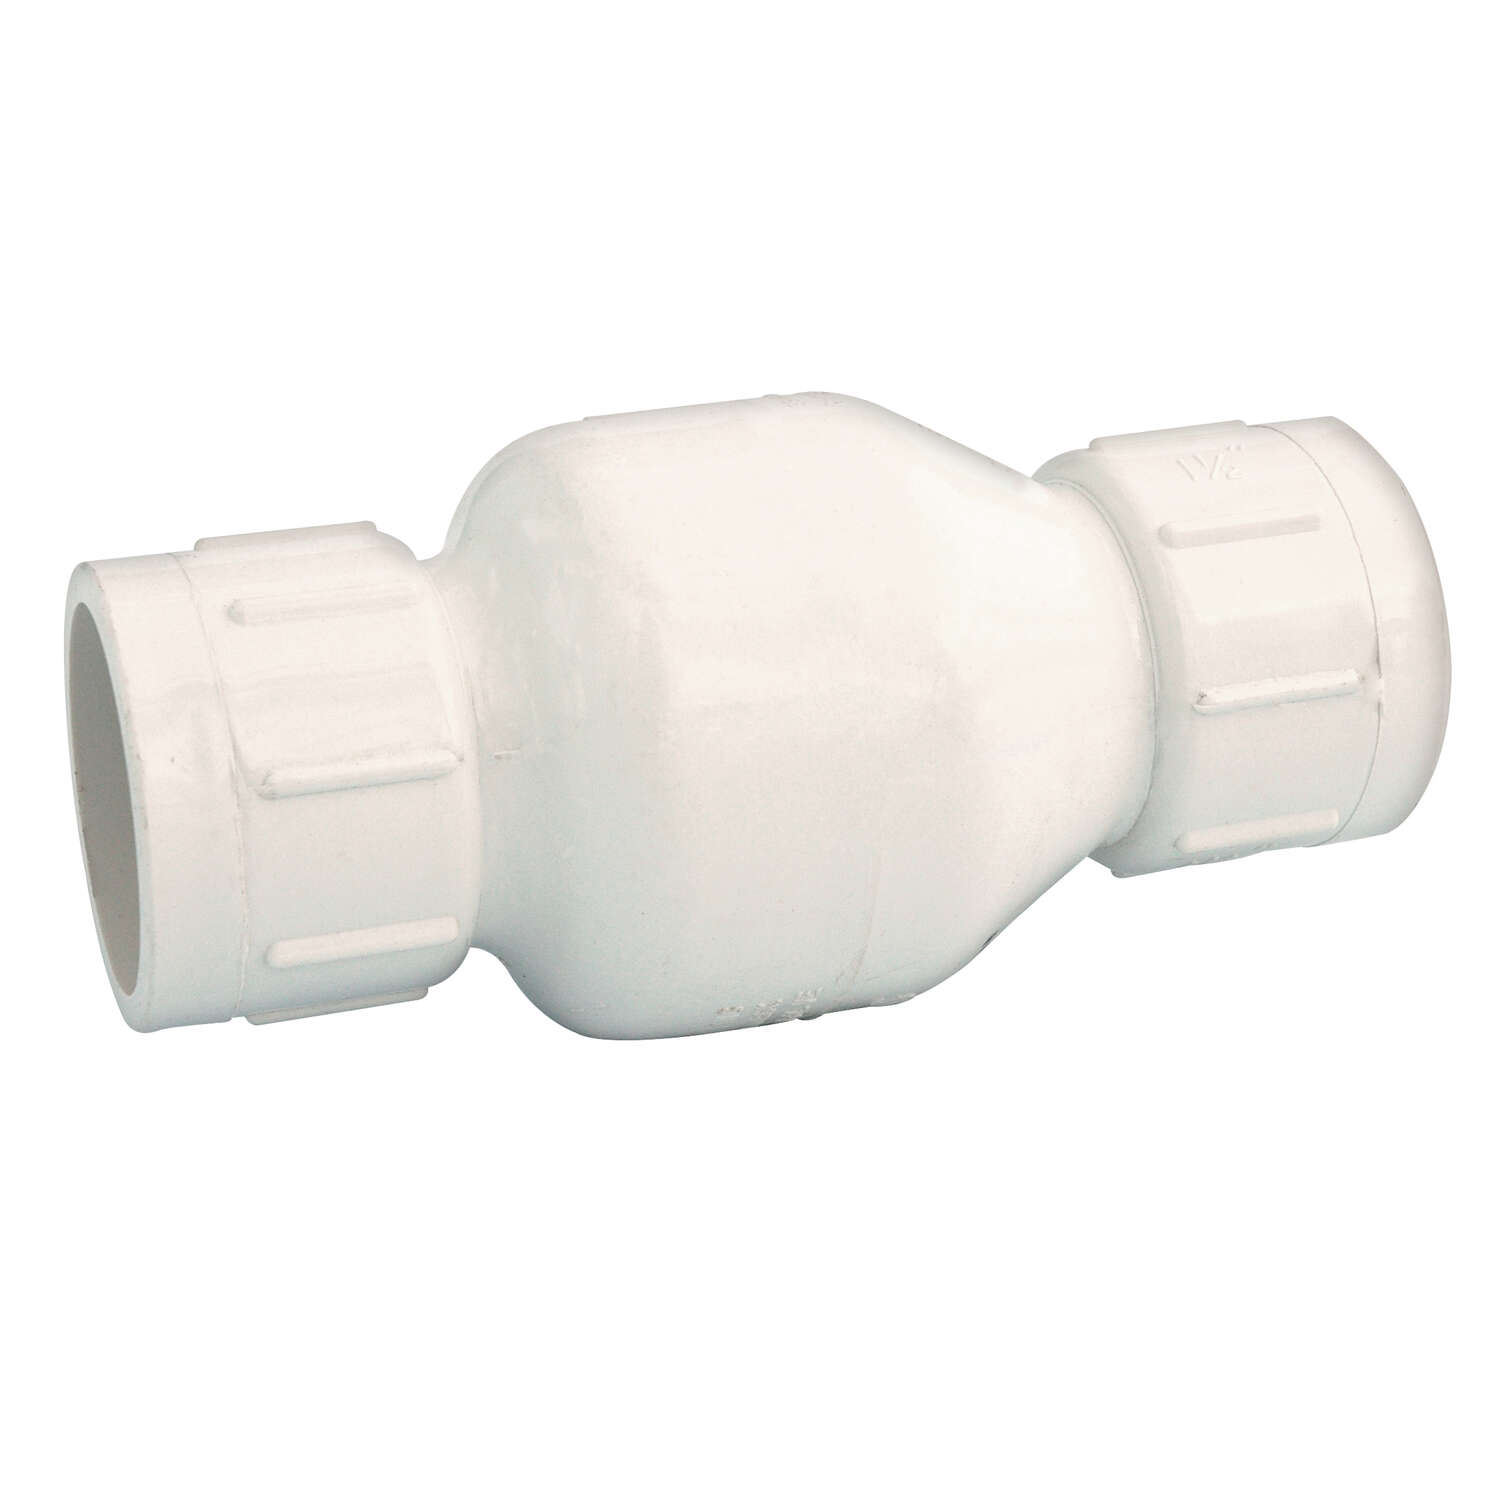 NDS  1-1/4 in. Dia. x 1-1/4 in. Dia. Plastic  Spring Loaded  Check Valve